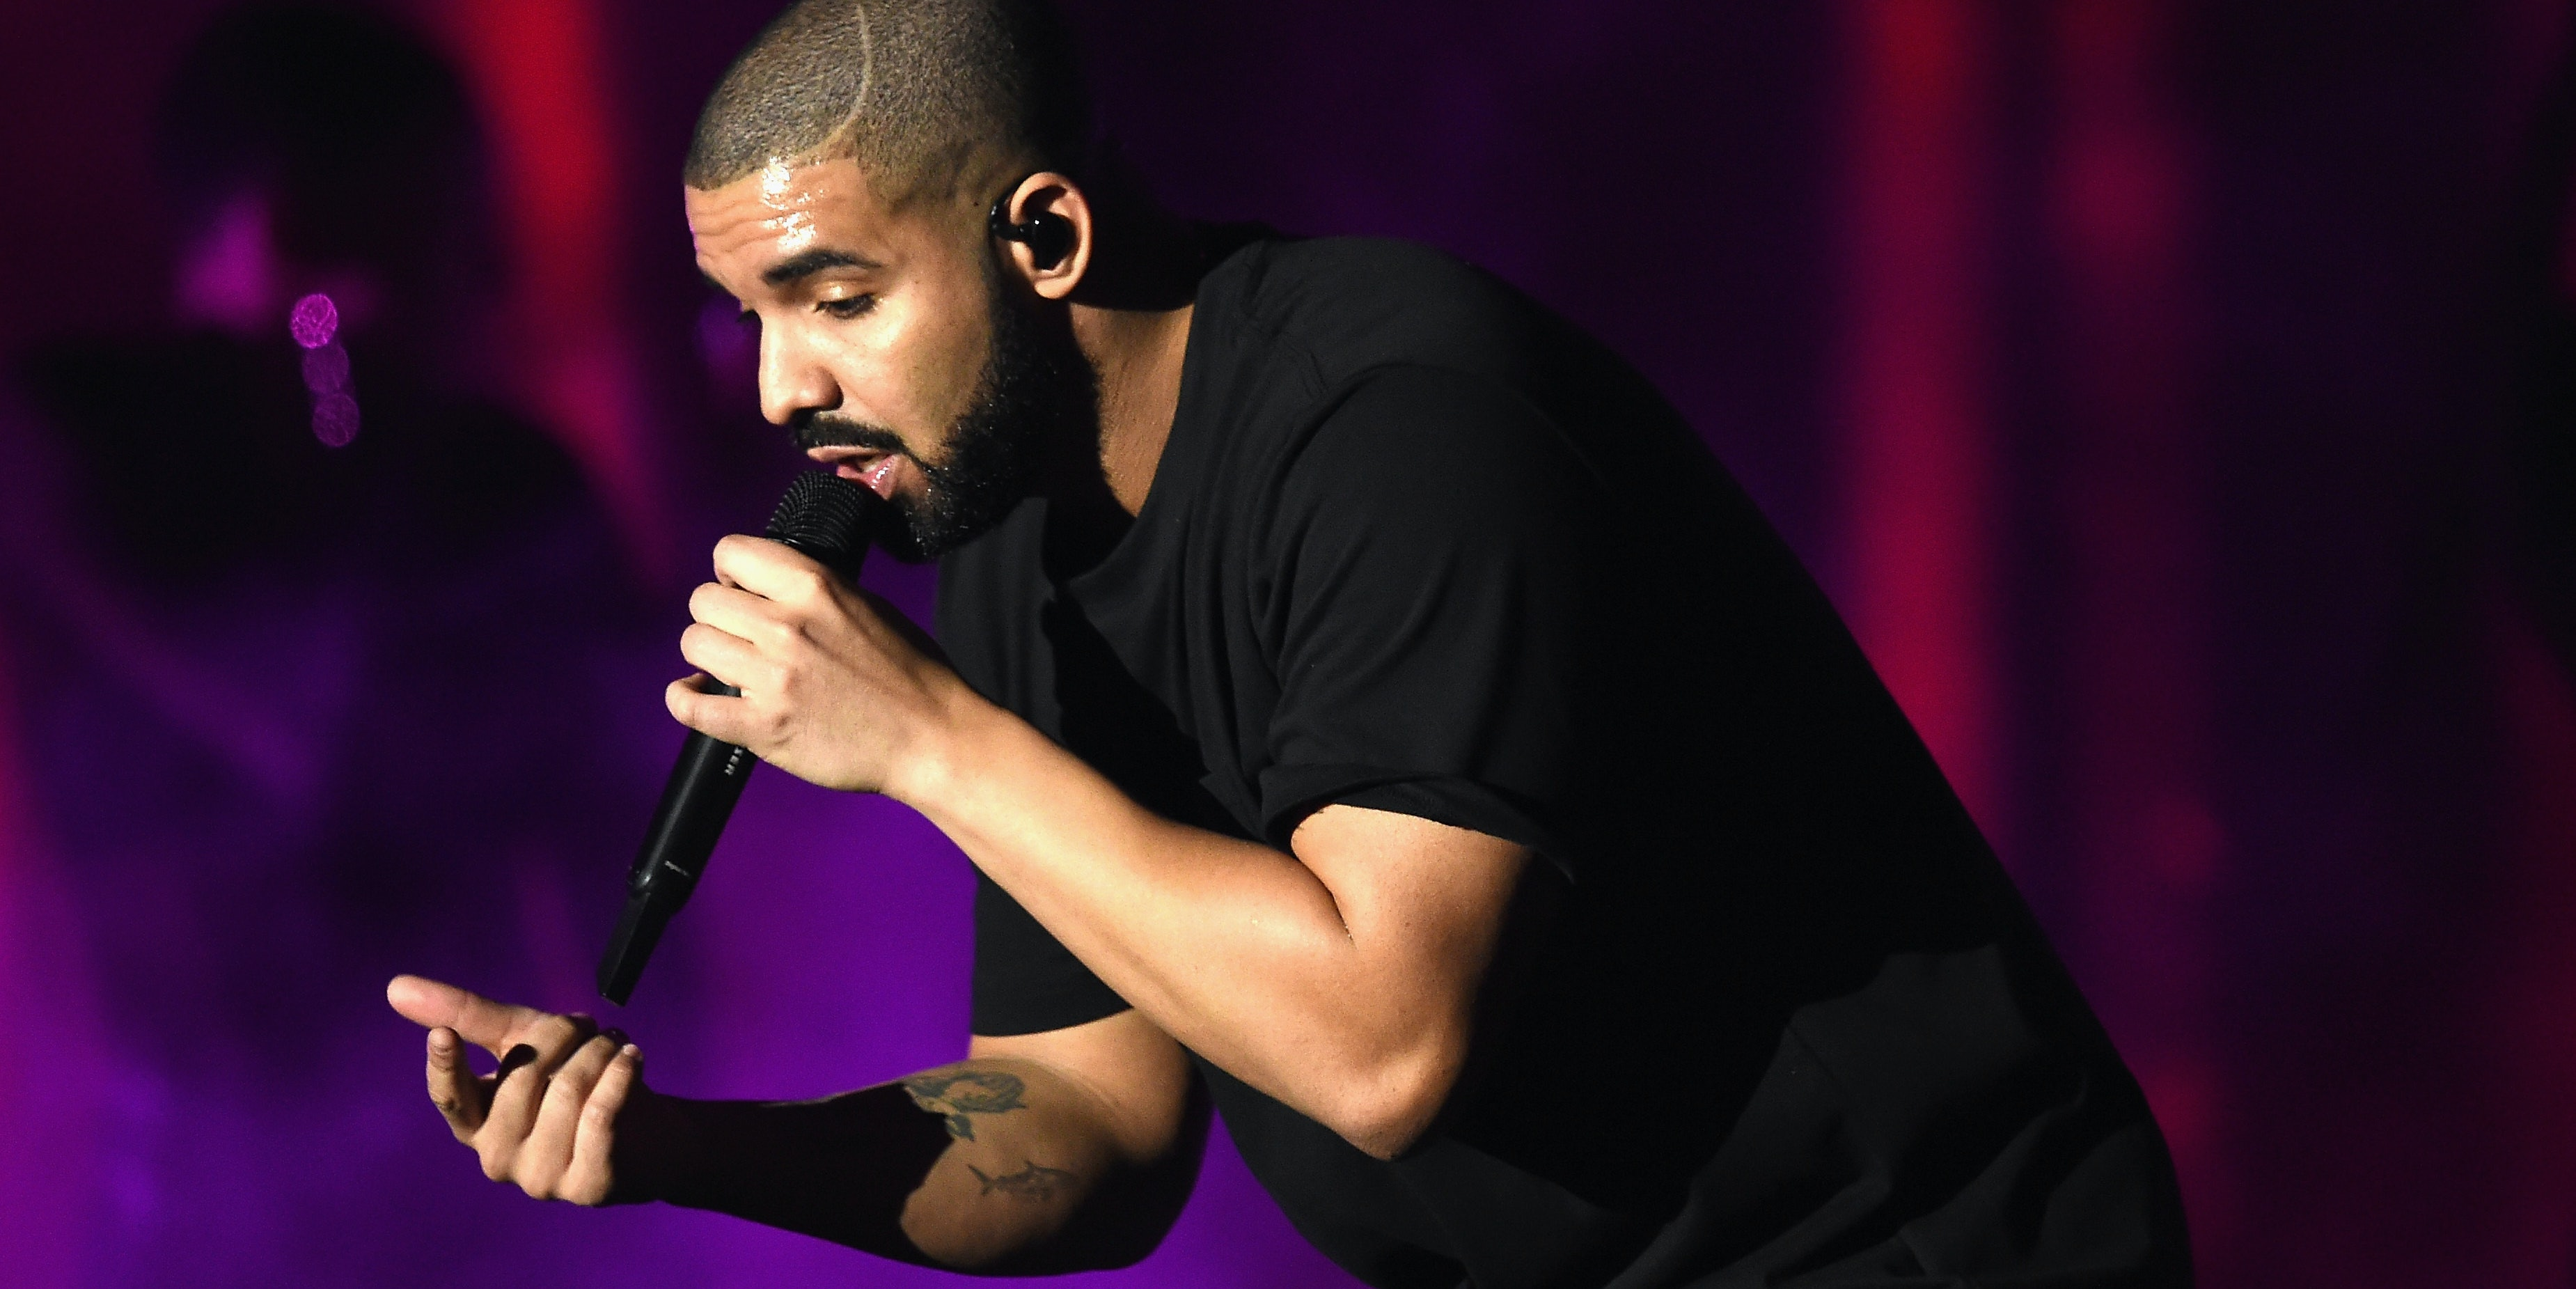 LAS VEGAS, NV - SEPTEMBER 23:  Recording artist Drake performs onstage at the 2016 iHeartRadio Music Festival at T-Mobile Arena on September 23, 2016 in Las Vegas, Nevada.  (Photo by Kevin Winter/Getty Images)